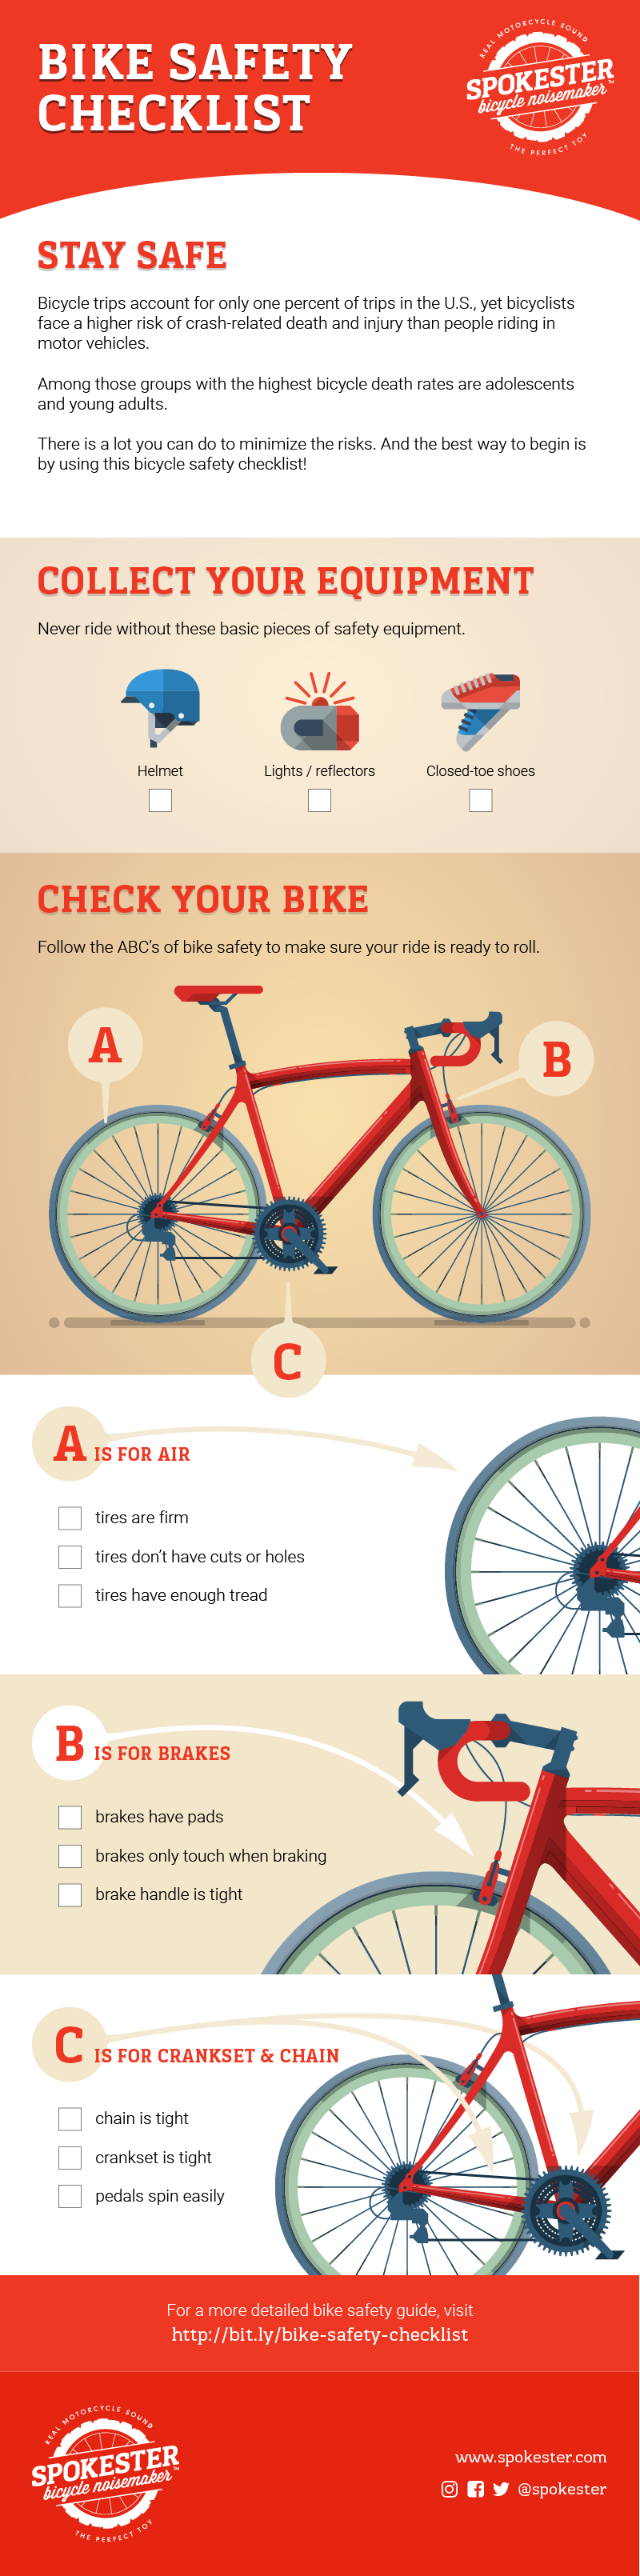 Infographic depicting the ABCs of bike safety: Air, Brakes, and Crankshaft & Chains